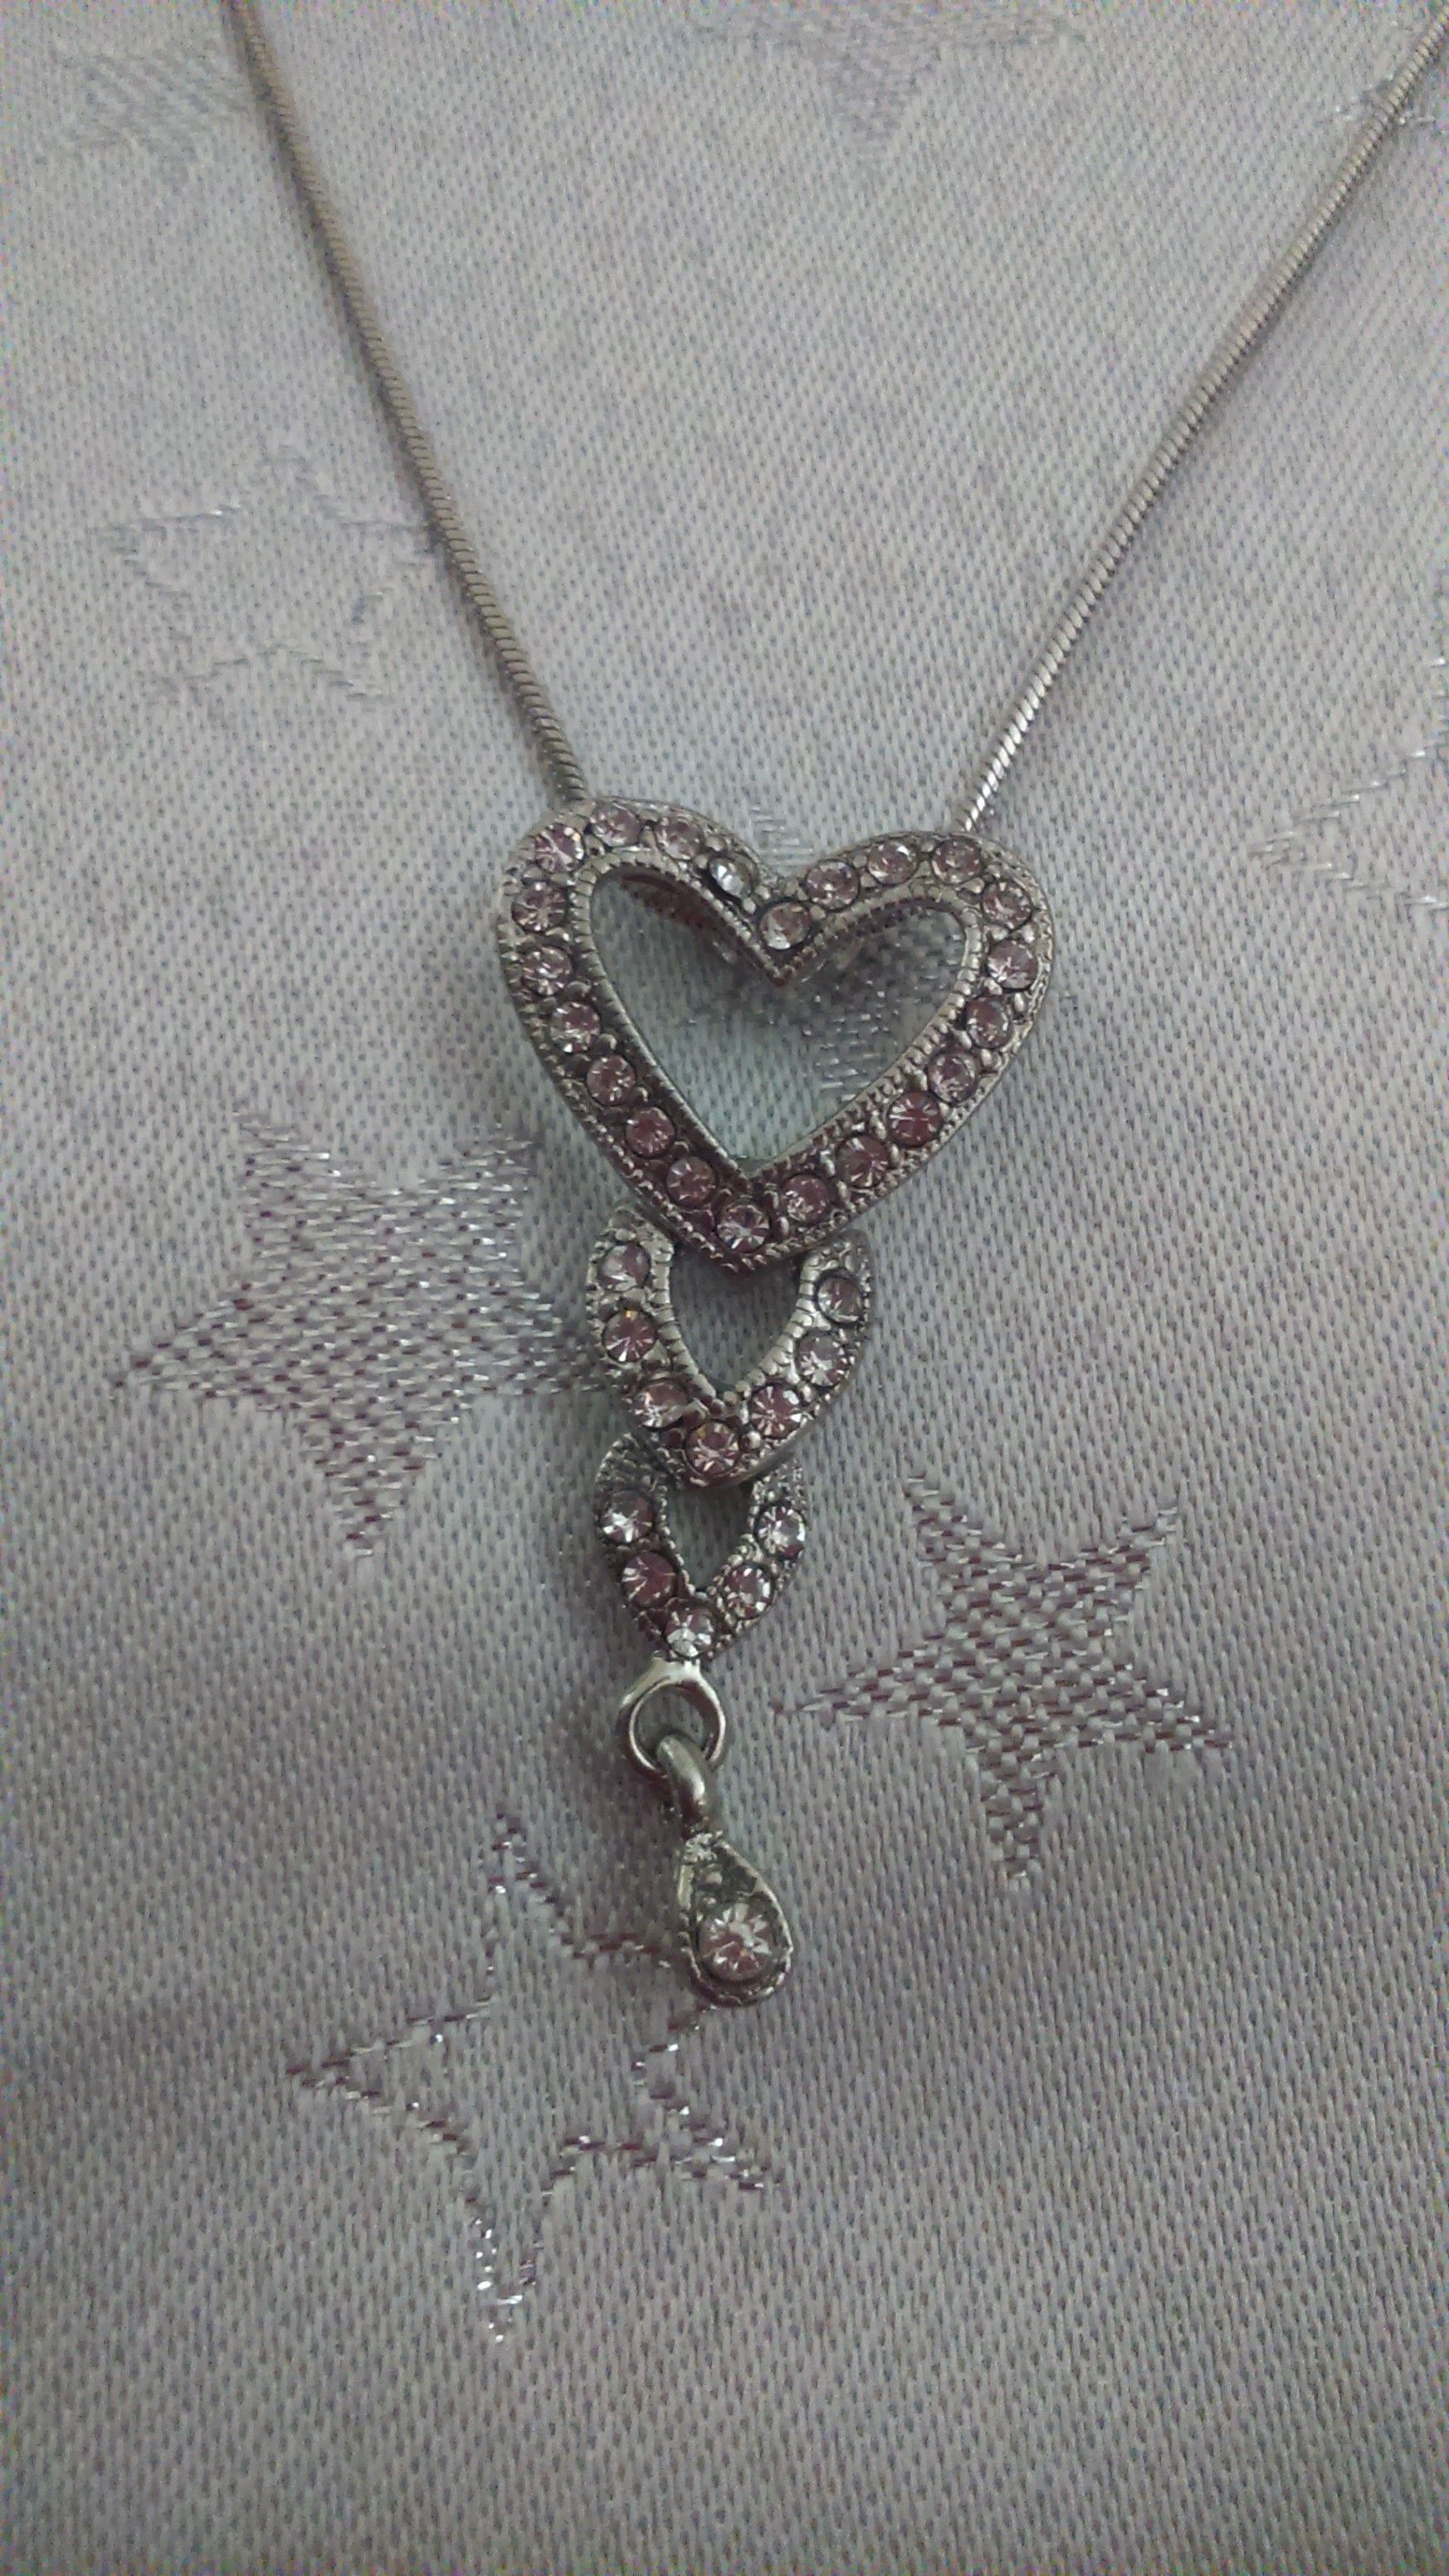 This is one of our new costume jewellery pieces which has just come into our shop this week.